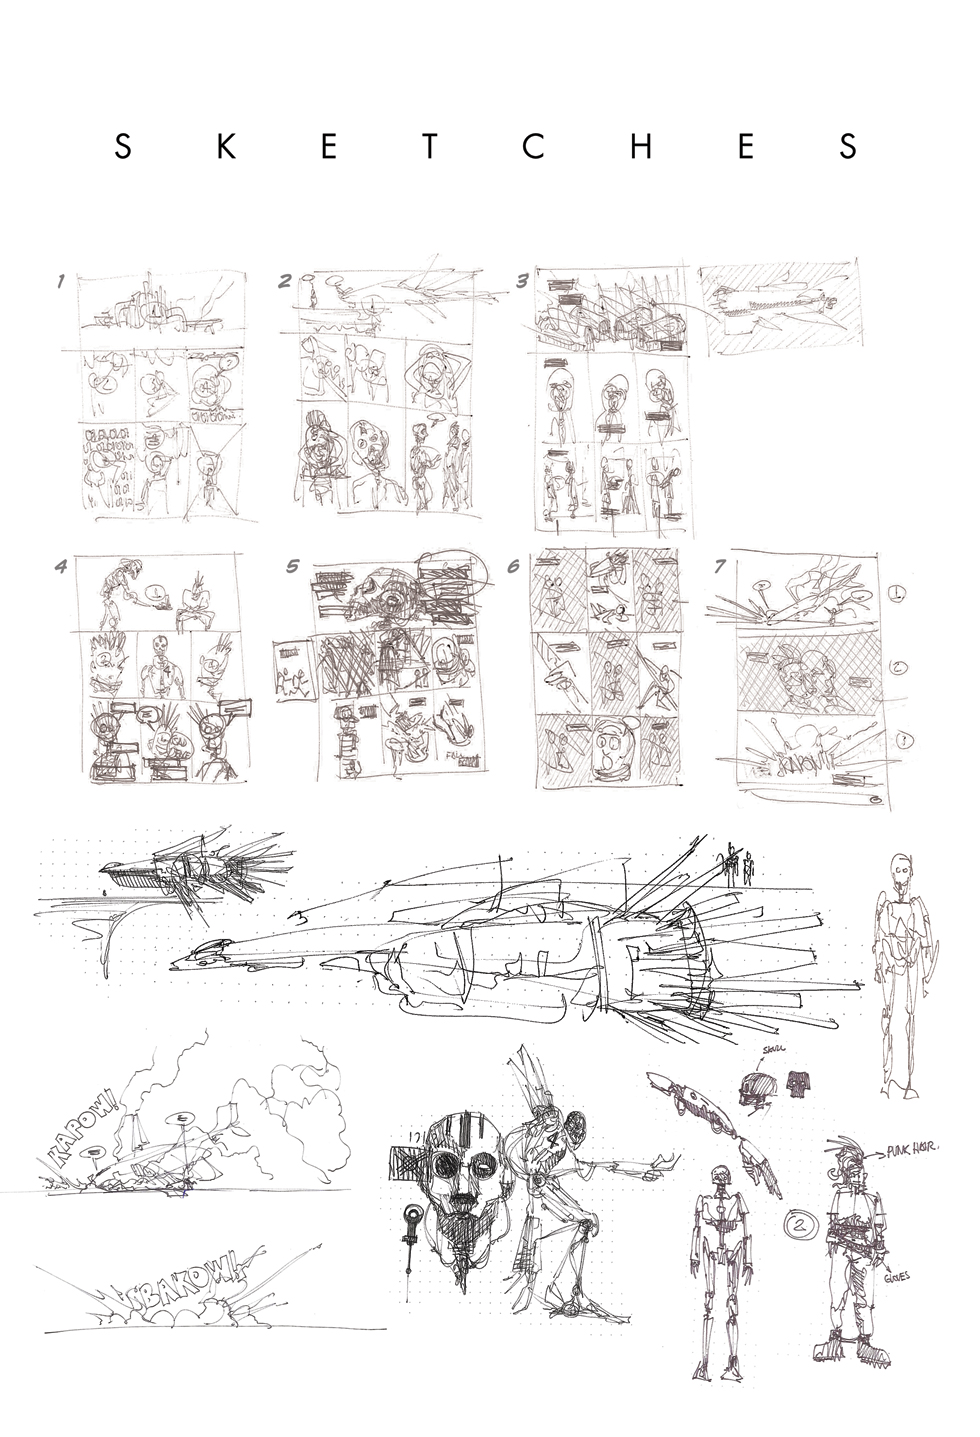 Conceptual sketches and page structure.